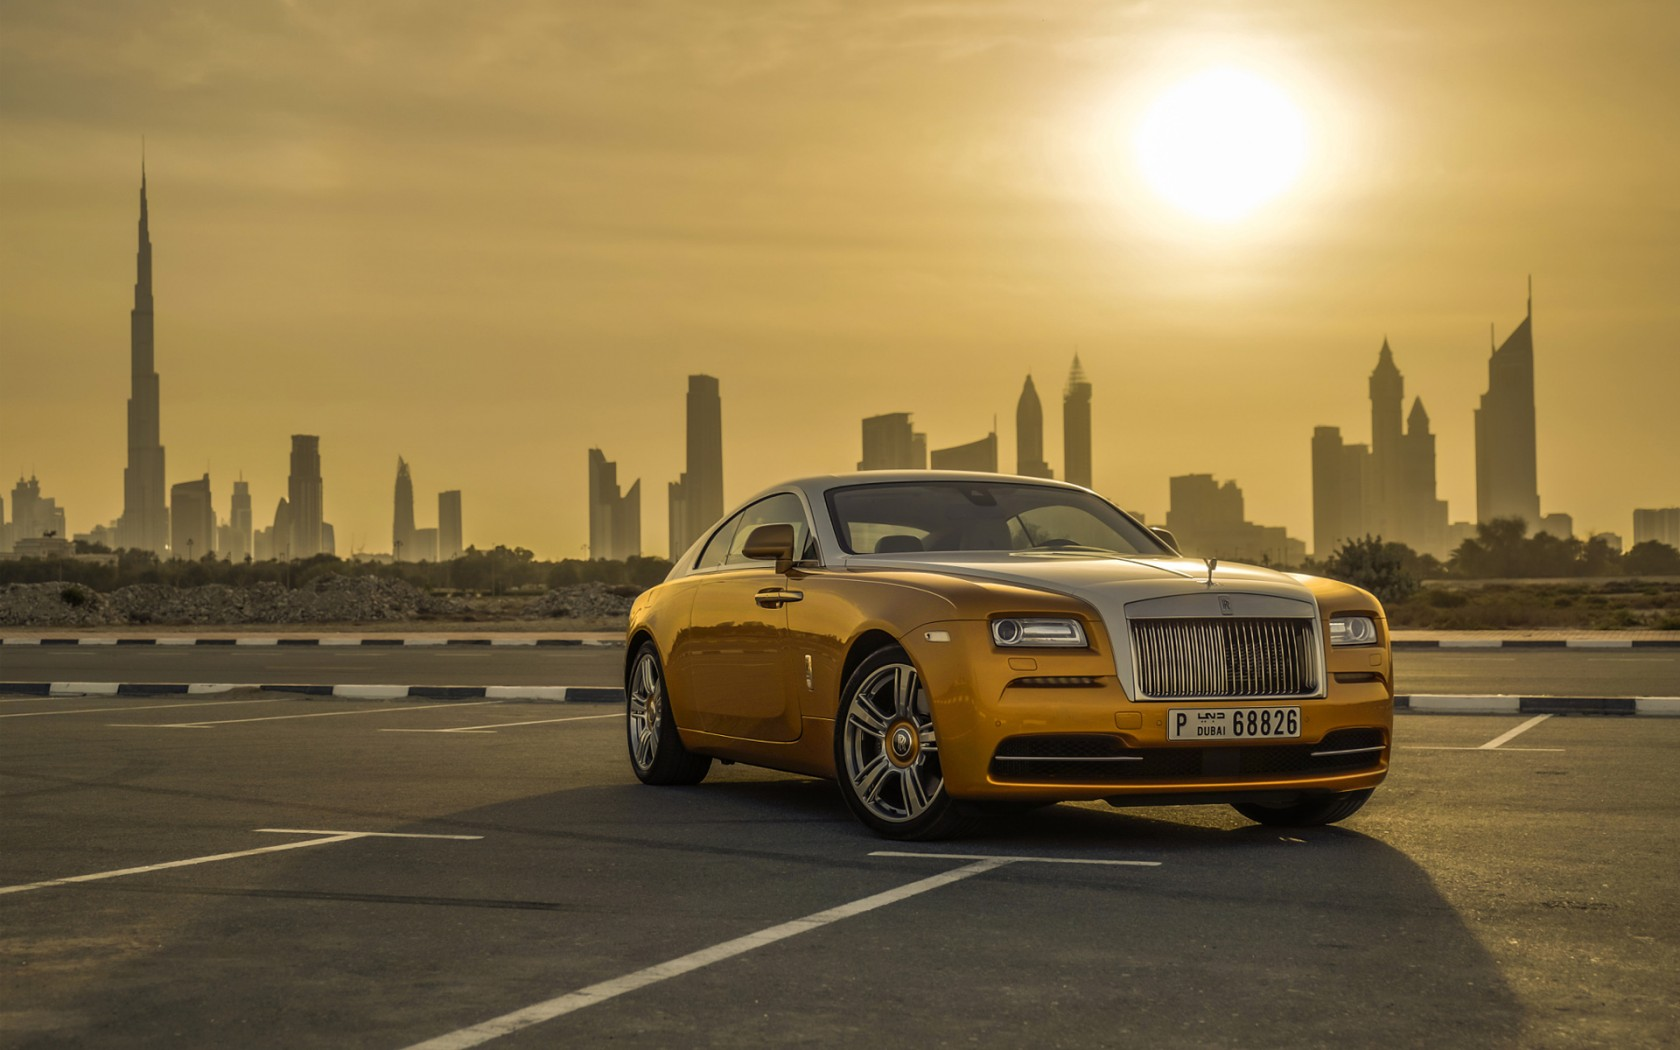 Rolls royce wraith wallpaper hd car wallpapers id 5751 - Cars hd wallpapers for laptop ...